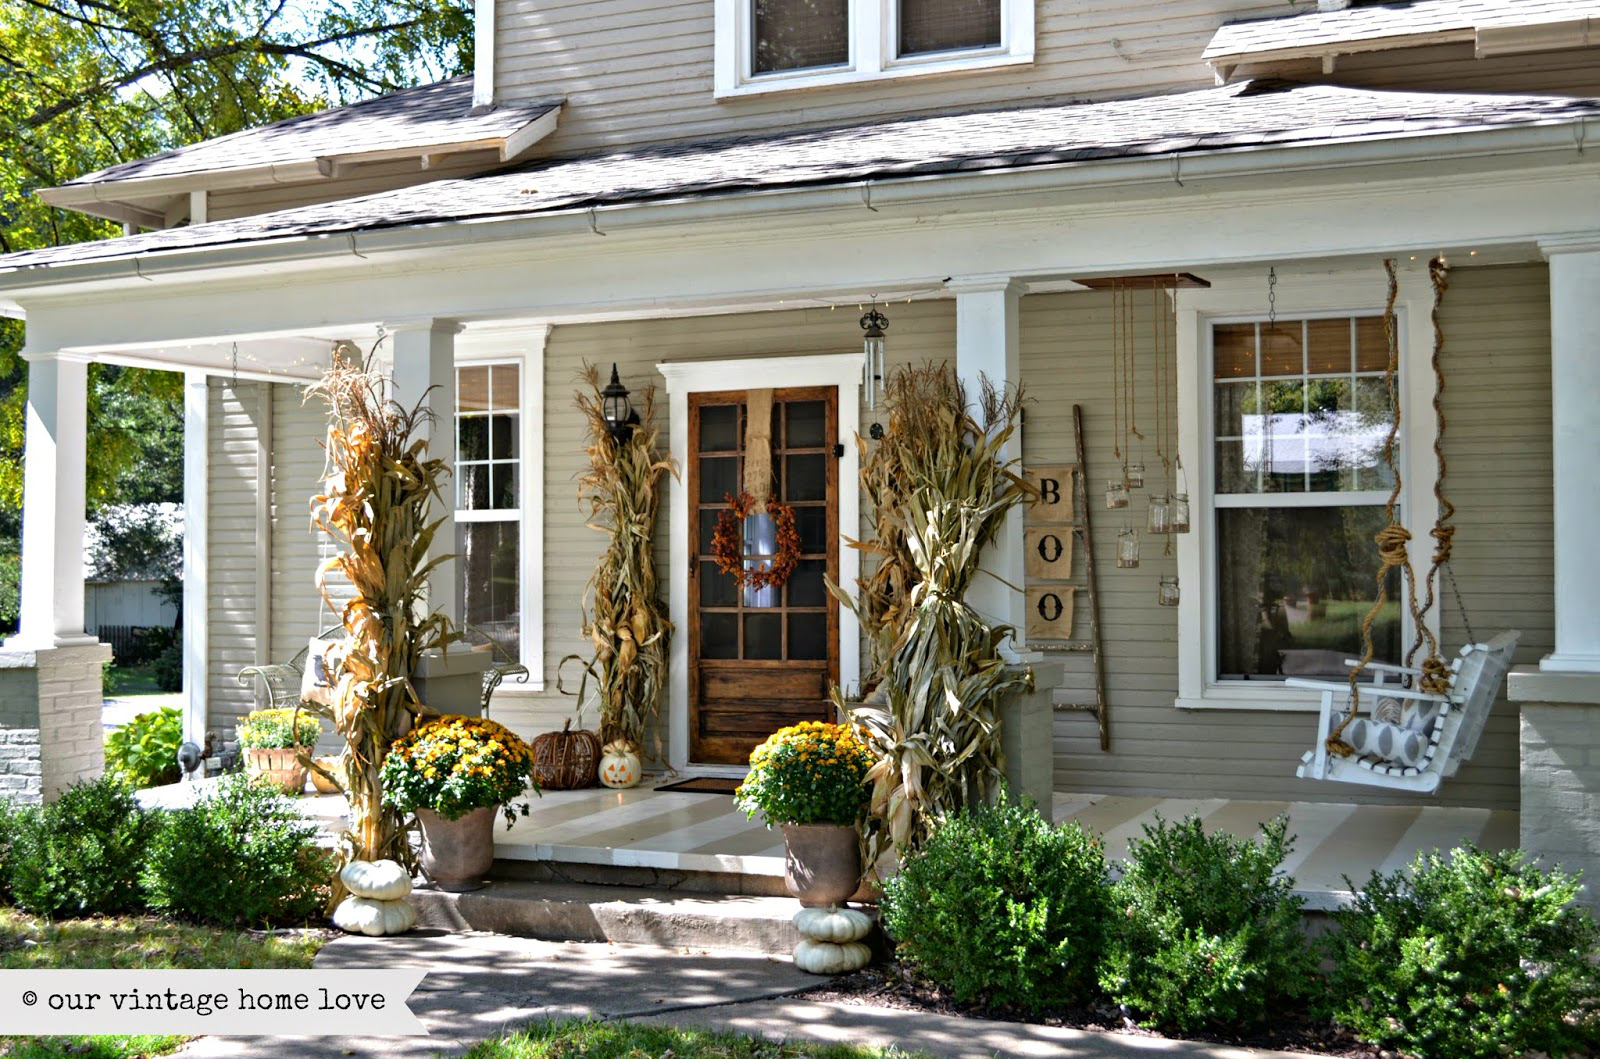 Front Porch Design Ideas wonderfully designed front porch a pleasing porch design 37 Fall Porch Decorating Ideas Ways To Decorate Your Porch For Fall